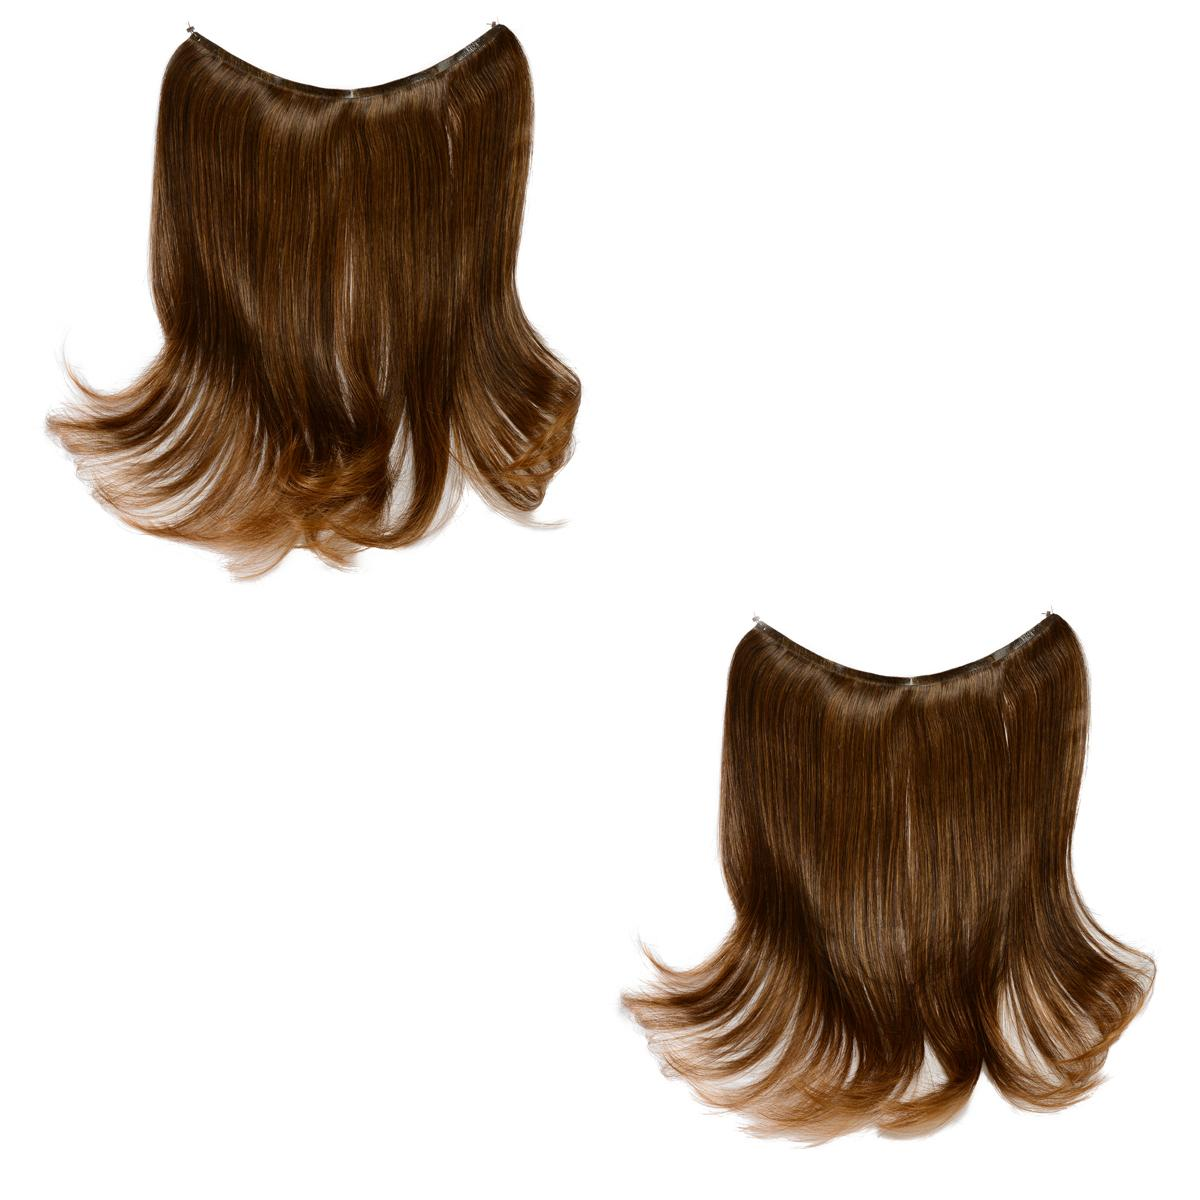 Easy Wear Extensions Double Up Set of 2 (Light Brown)